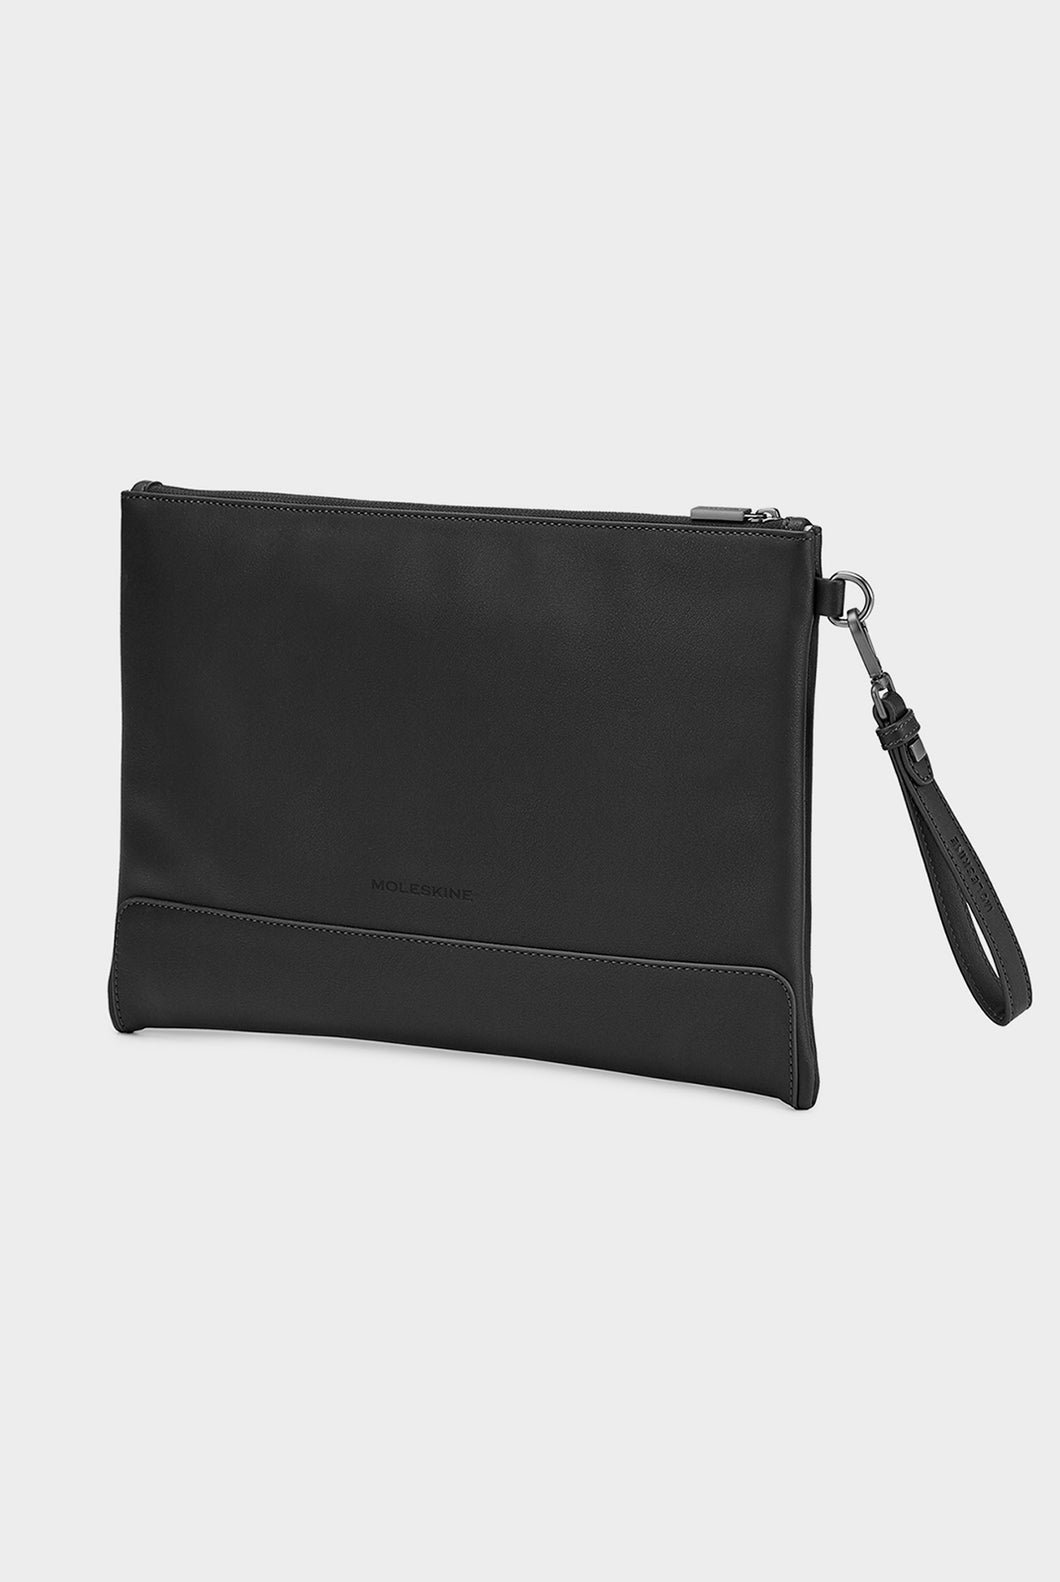 Moleskine - Classic Clutch - Medium - Black